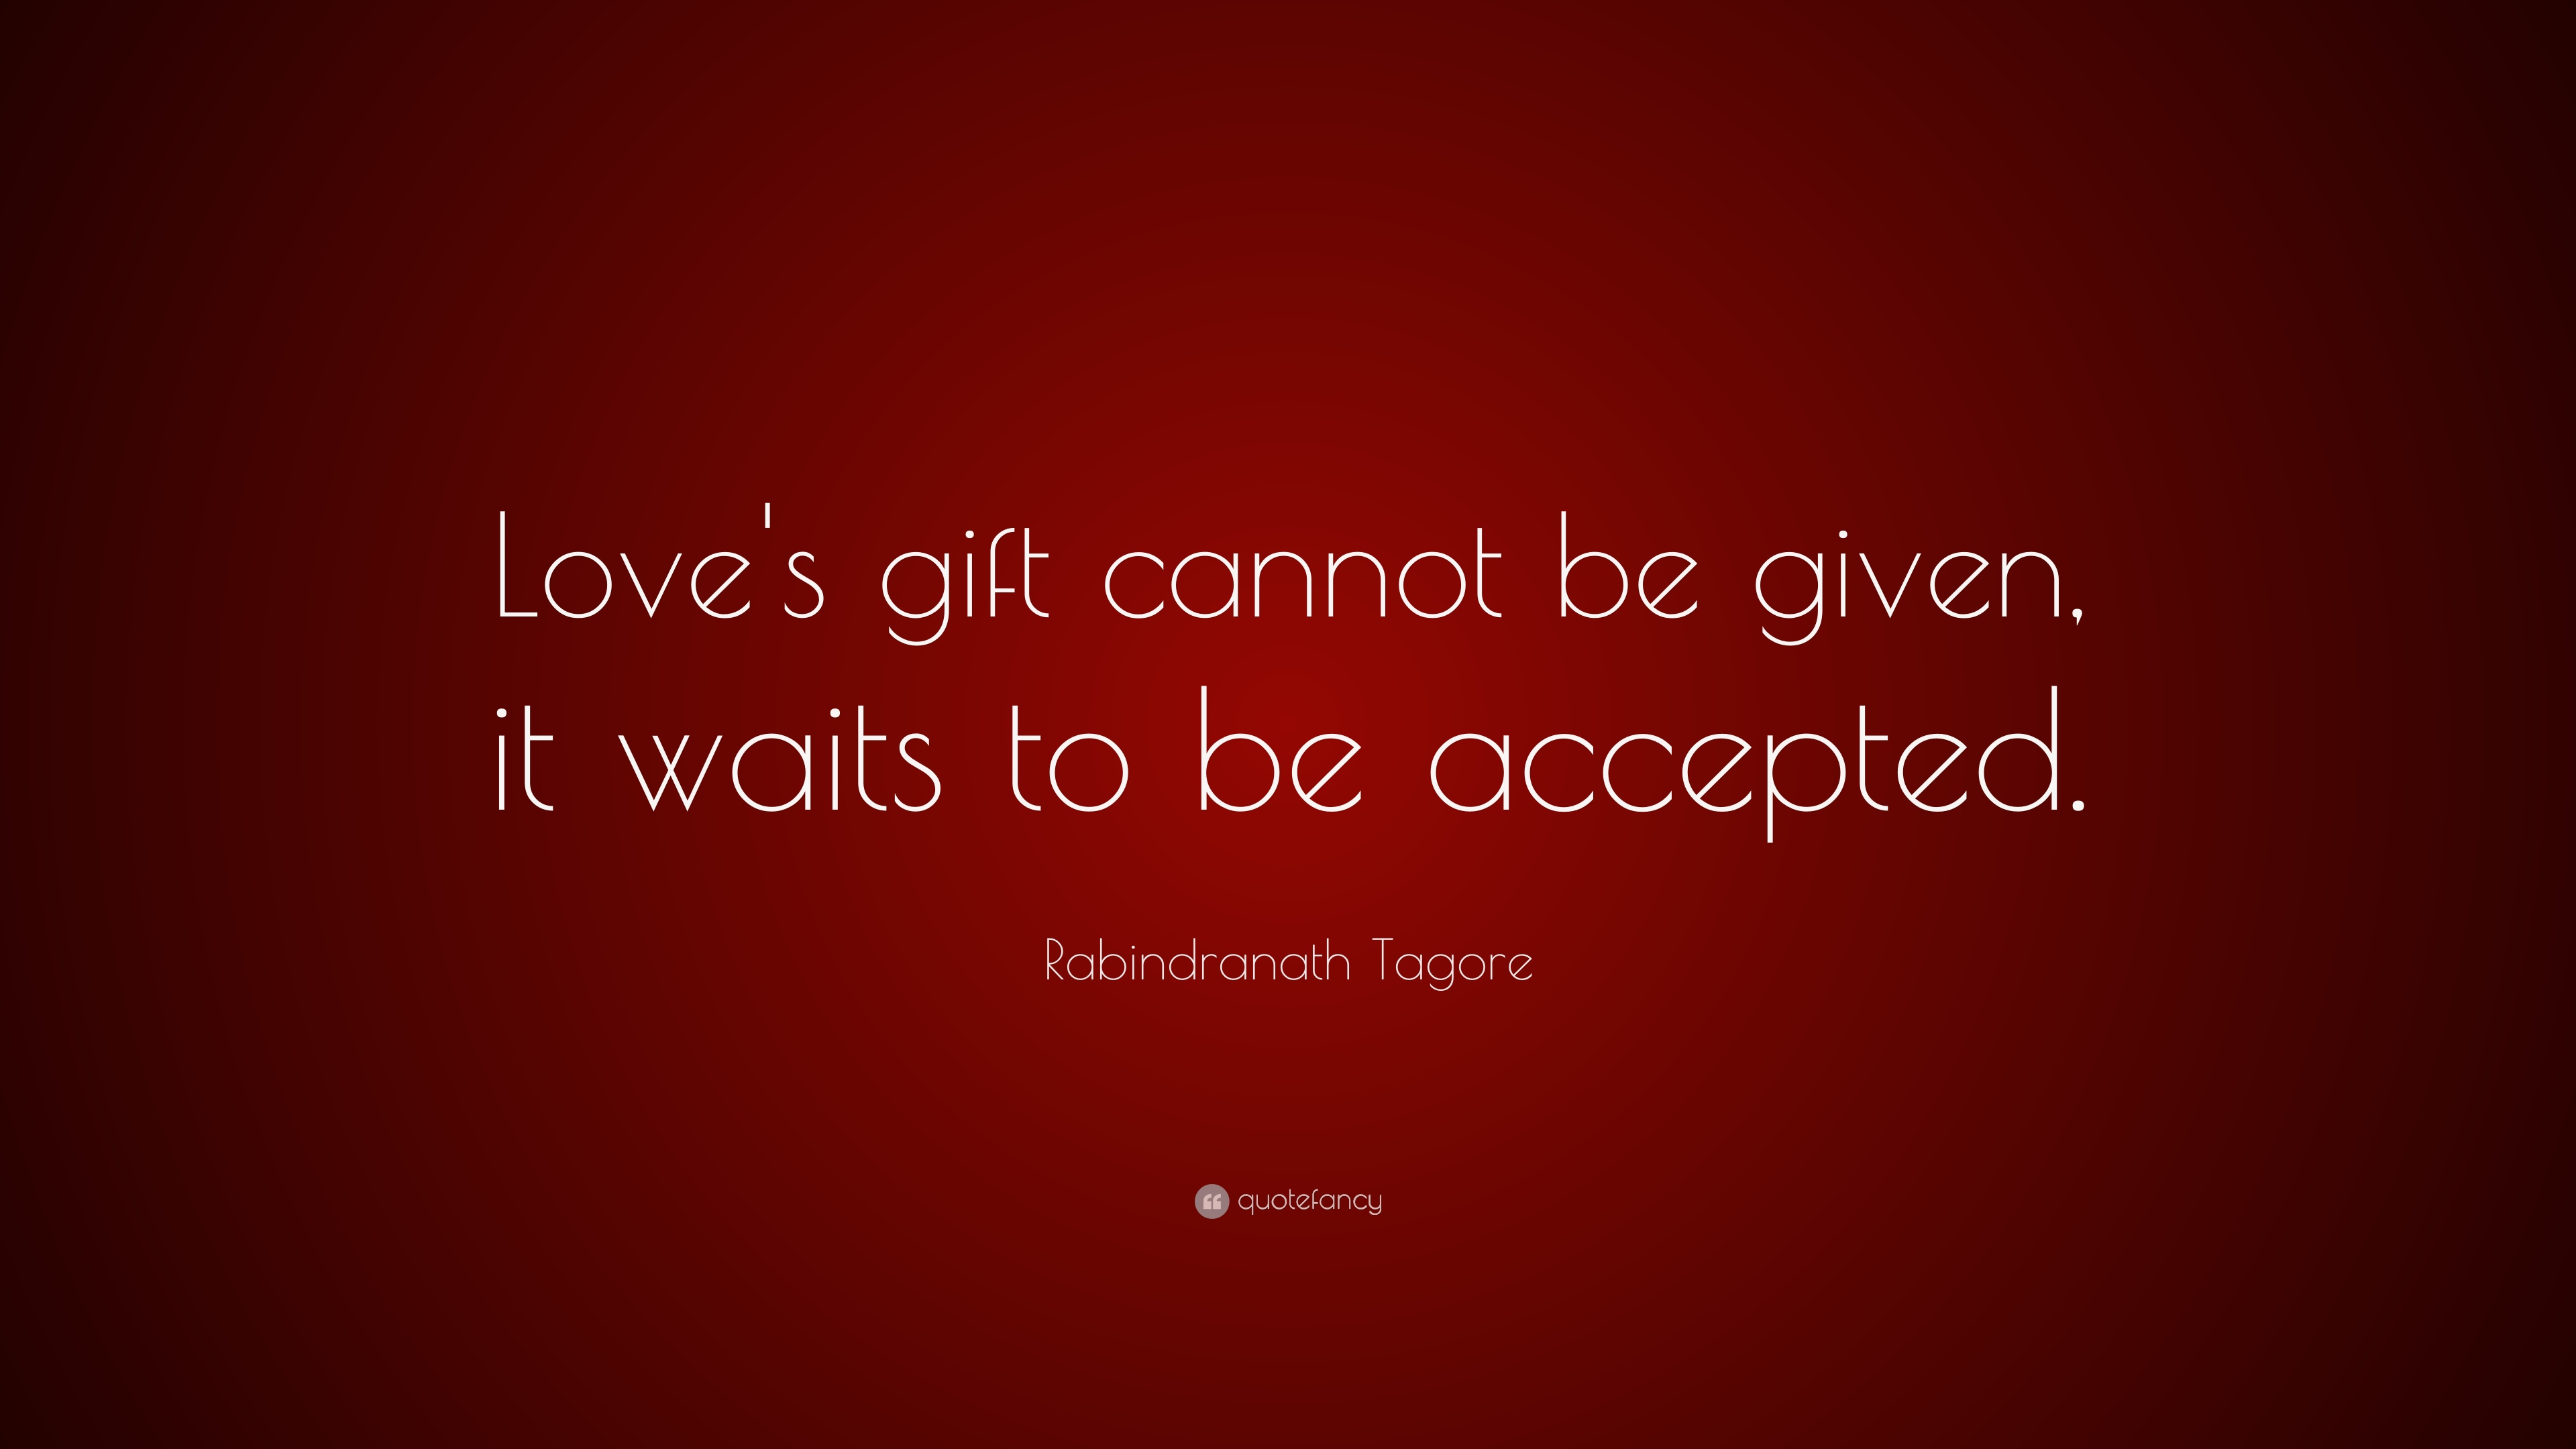 rabindranath tagore quotes 100 wallpapers quotefancy